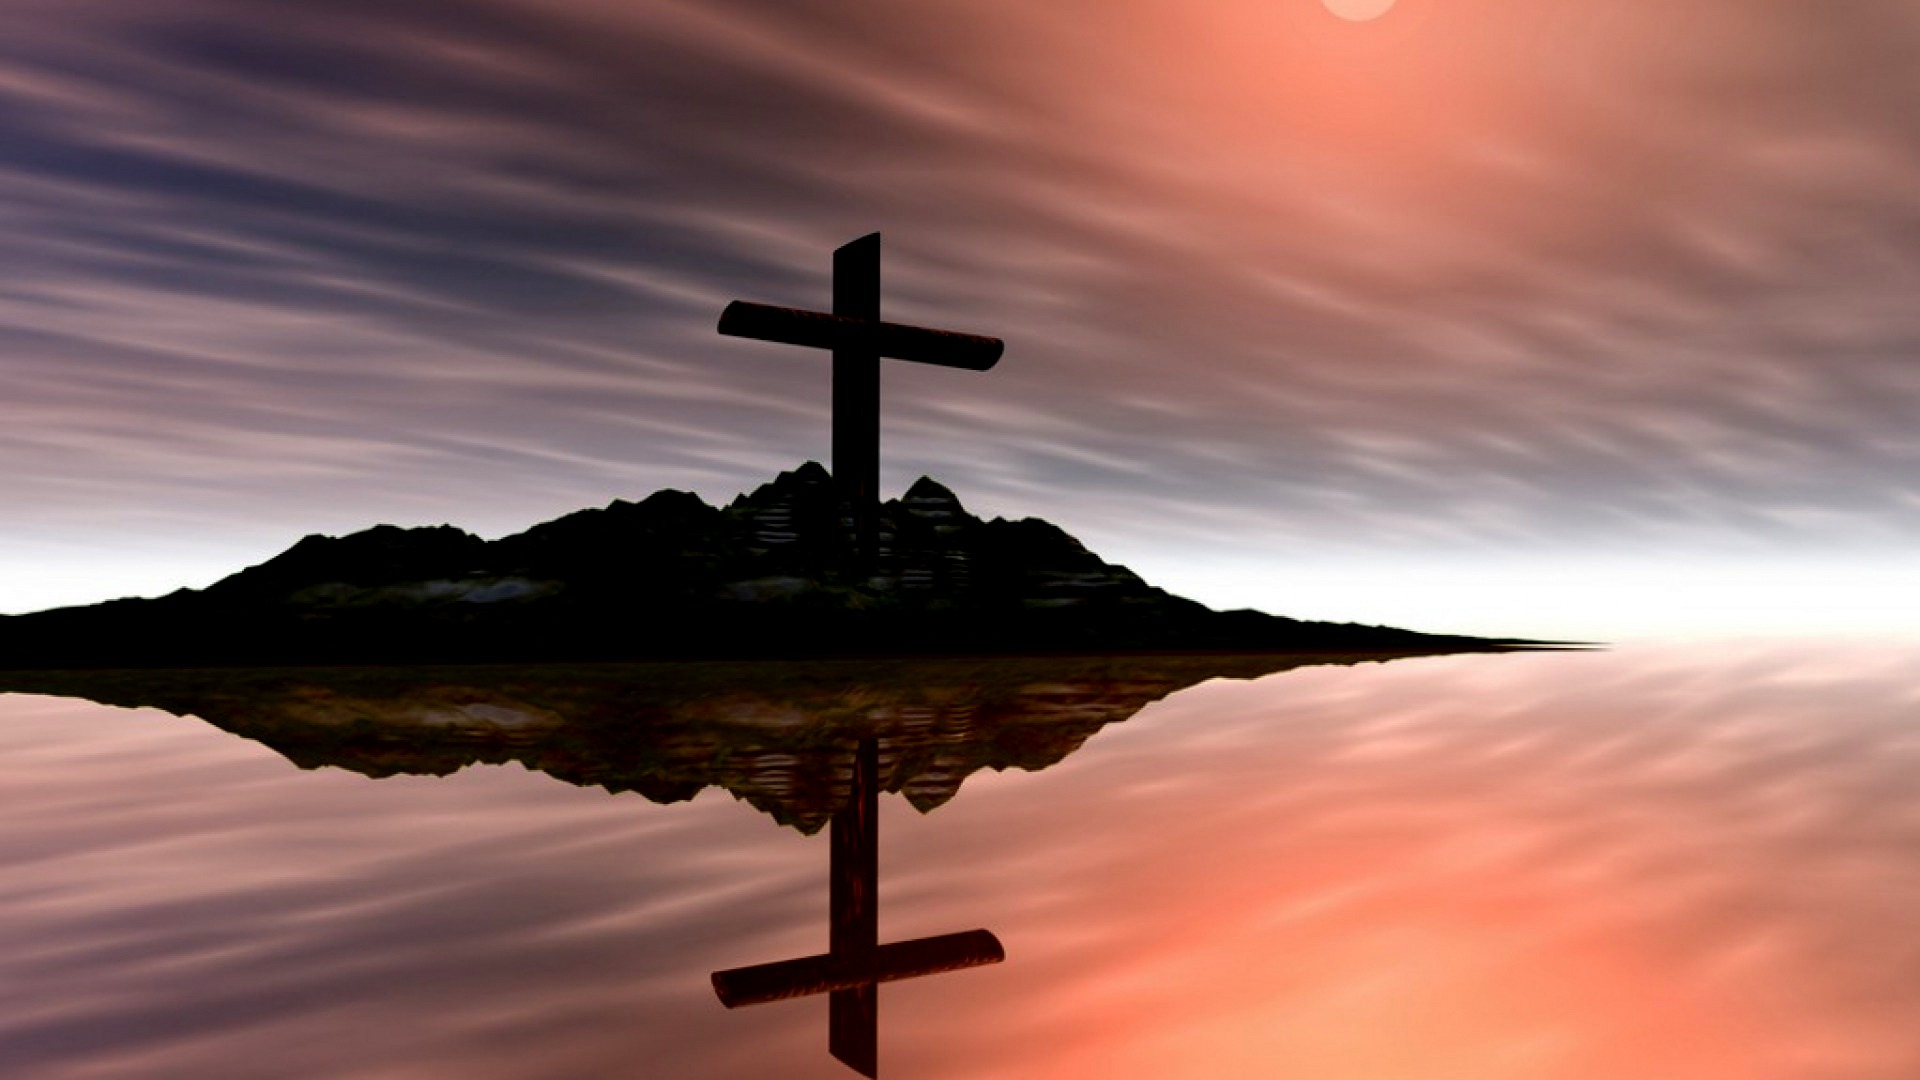 Cross Computer Wallpapers Desktop Backgrounds 1920x1080 ID341223 1920x1080